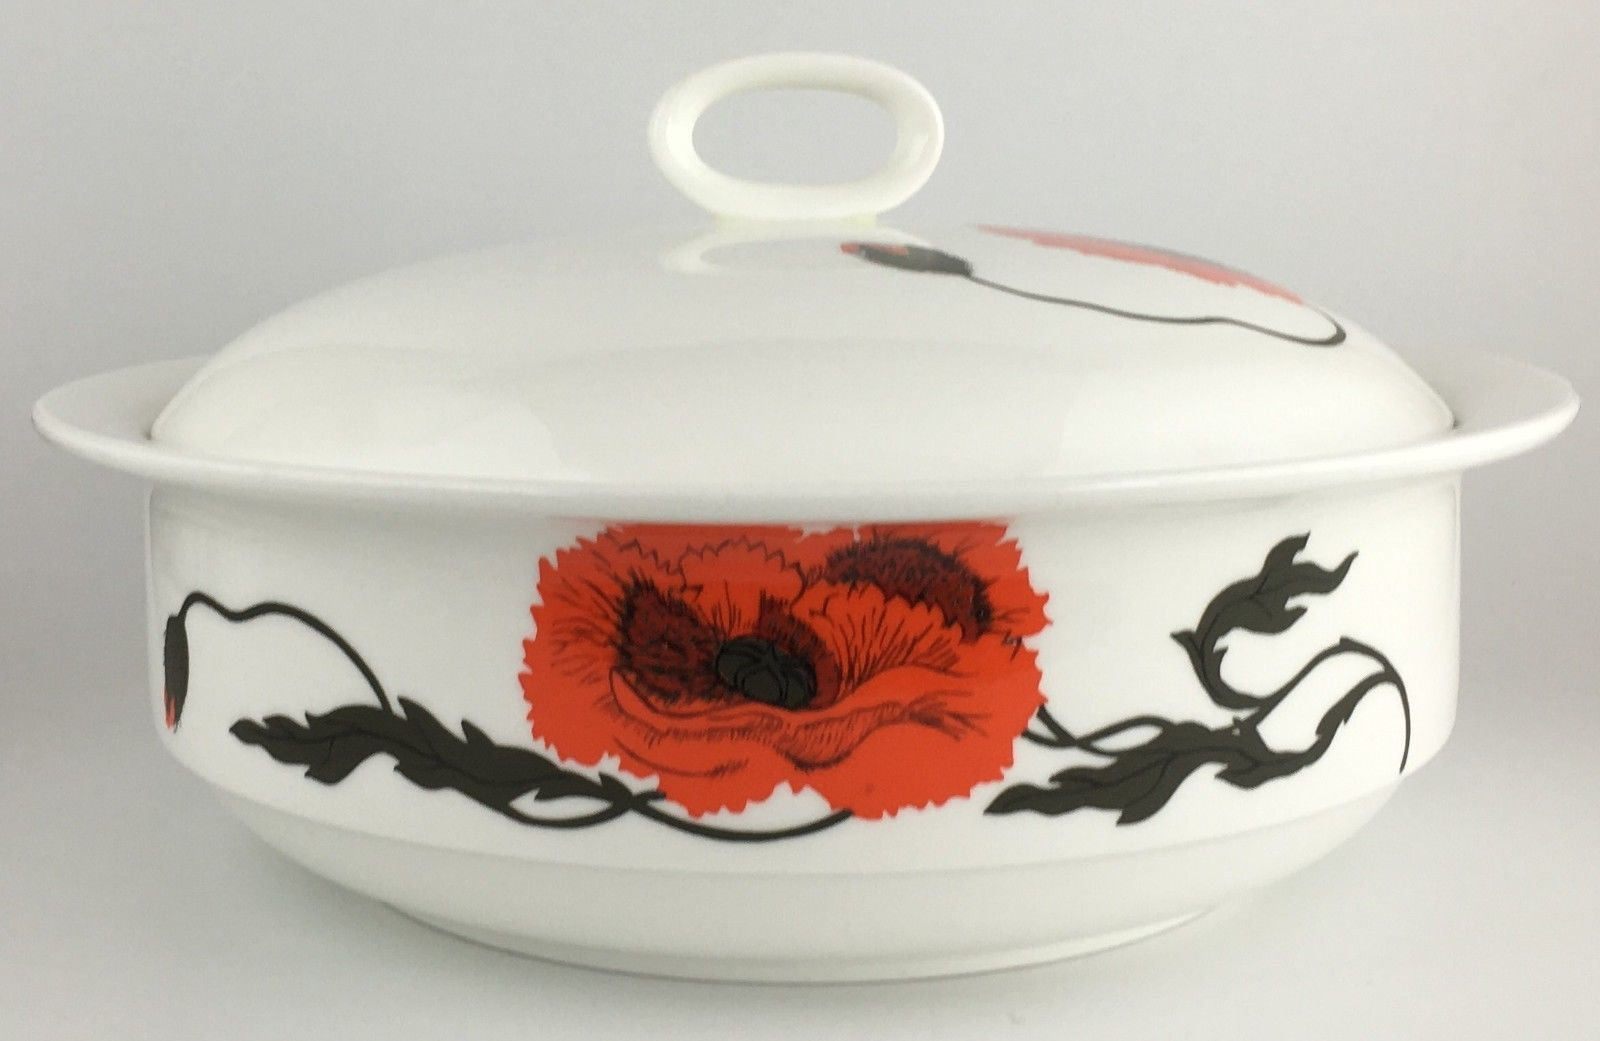 Primary image for Wedgwood CORNPOPPY round covered vegetable bowl FREE SHIPPING (SKU 12/2016))